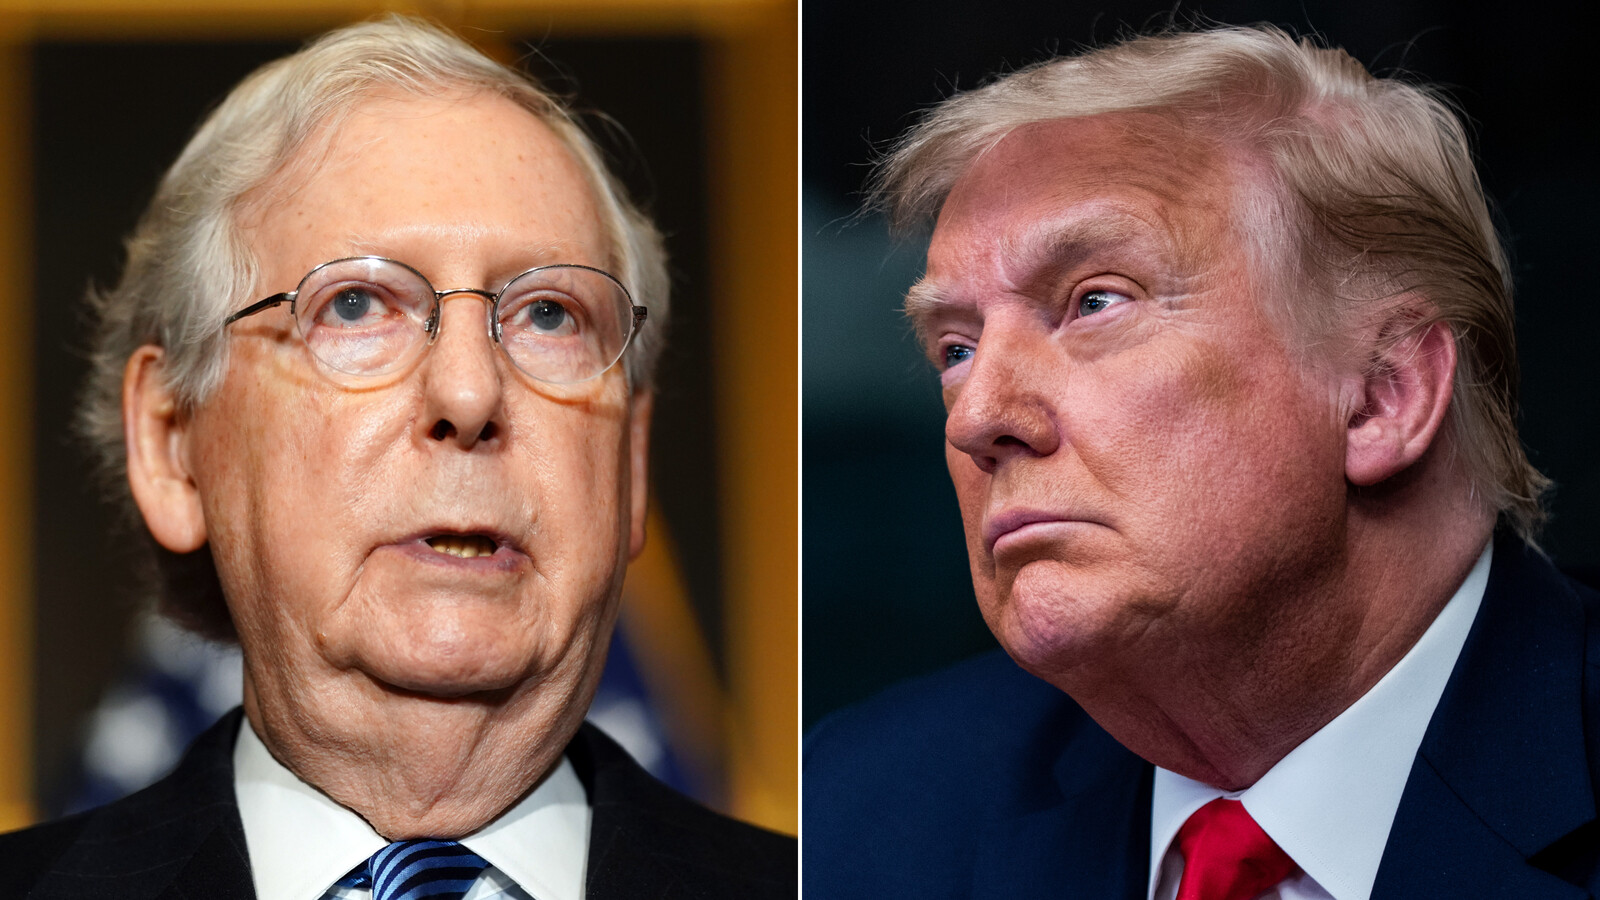 Mitch McConnell responds to Trump's 'Old Crow' insult: 'It's quite an honor'